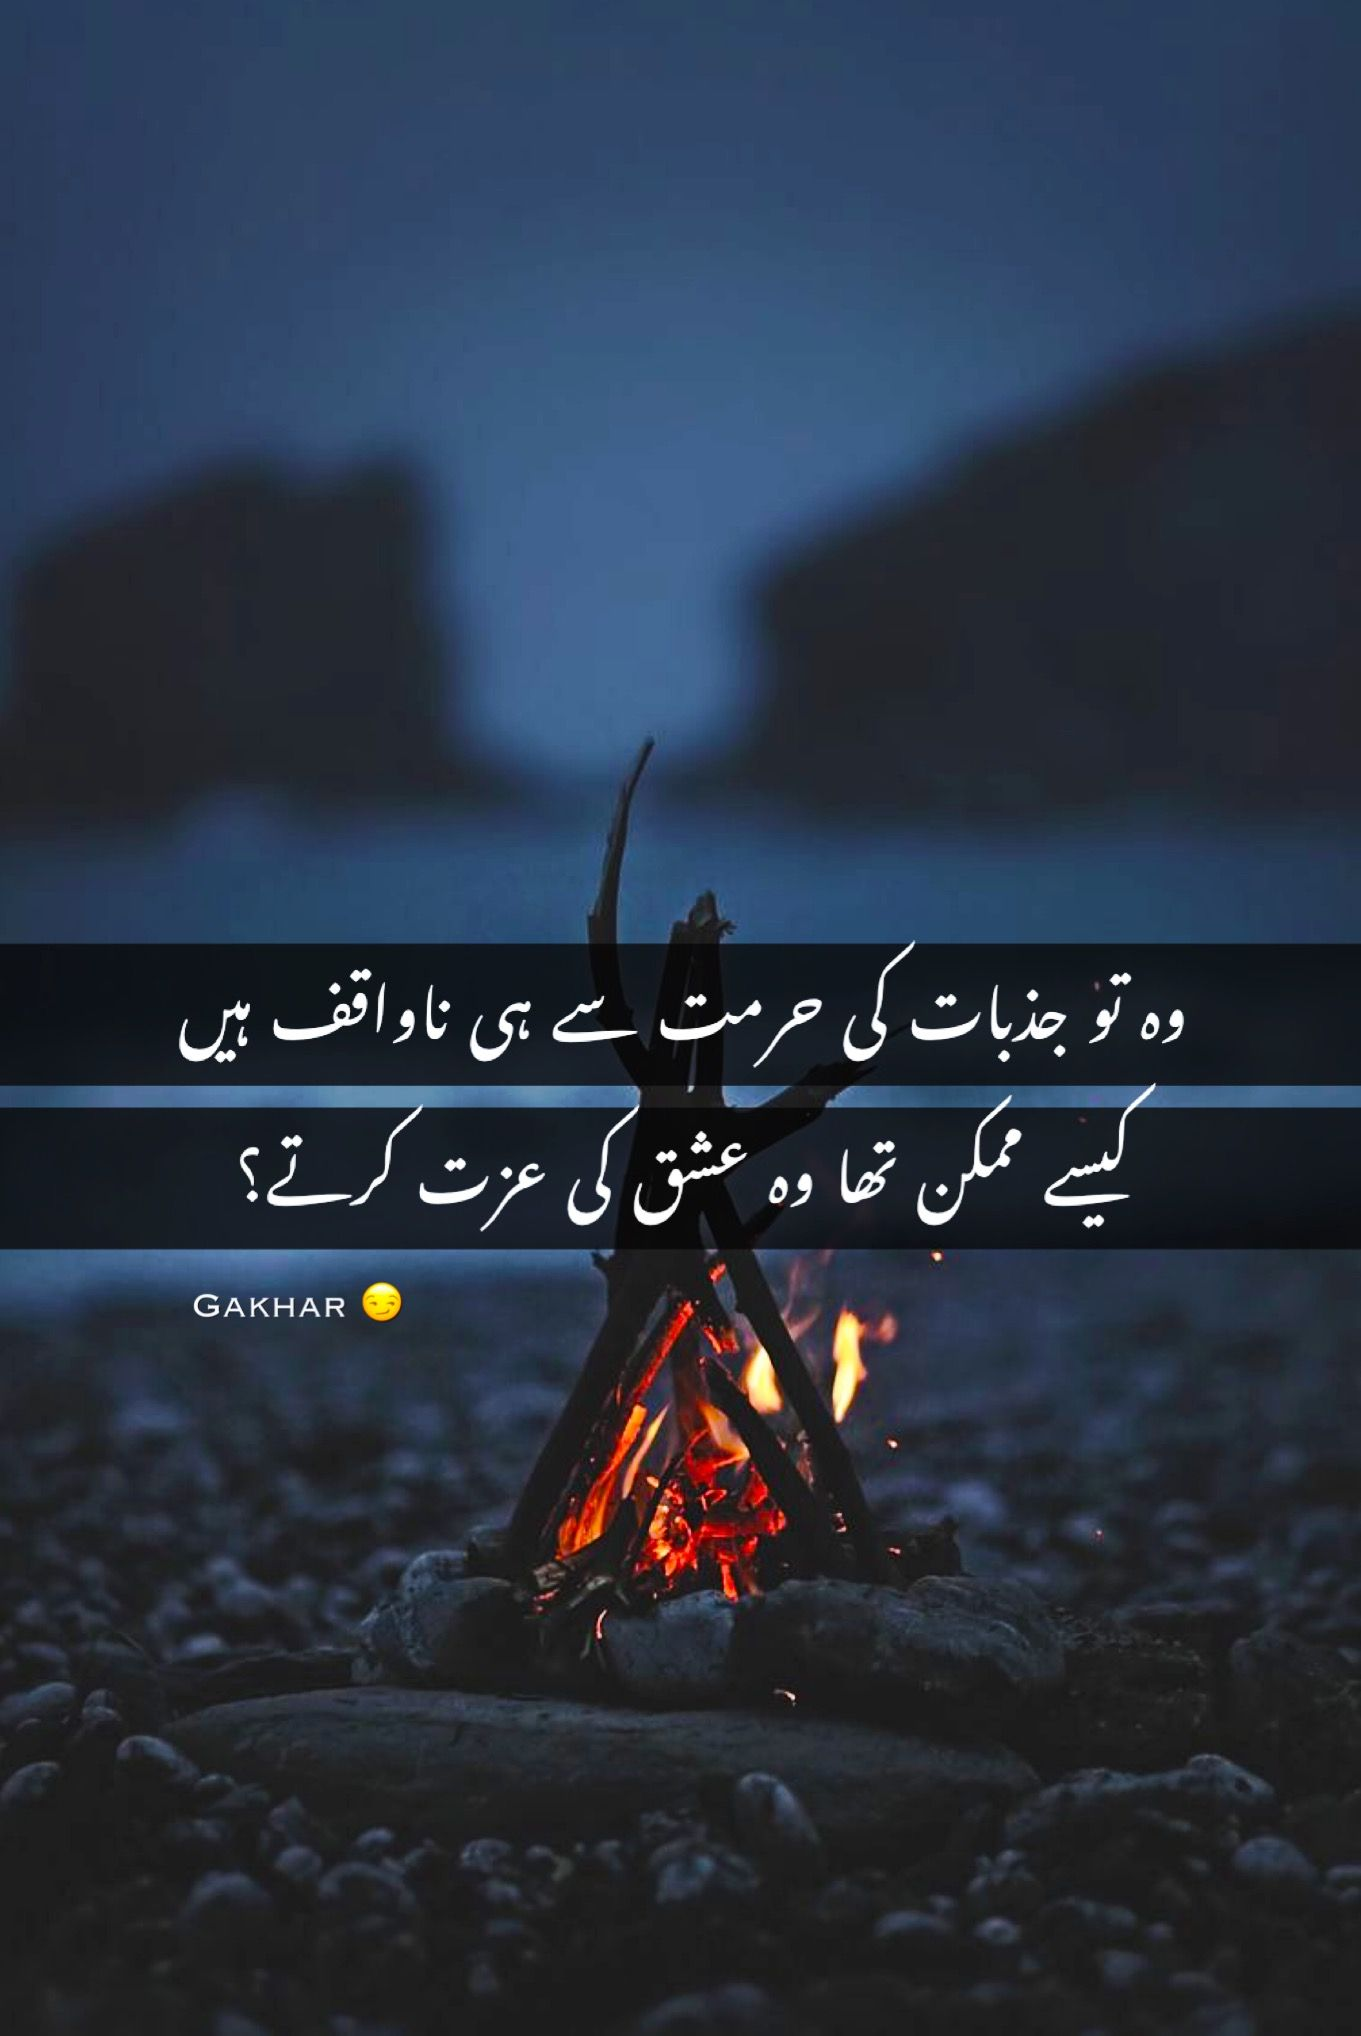 Pin by Sadaf Nasir on Poetry | Urdu poetry, Love poetry ...